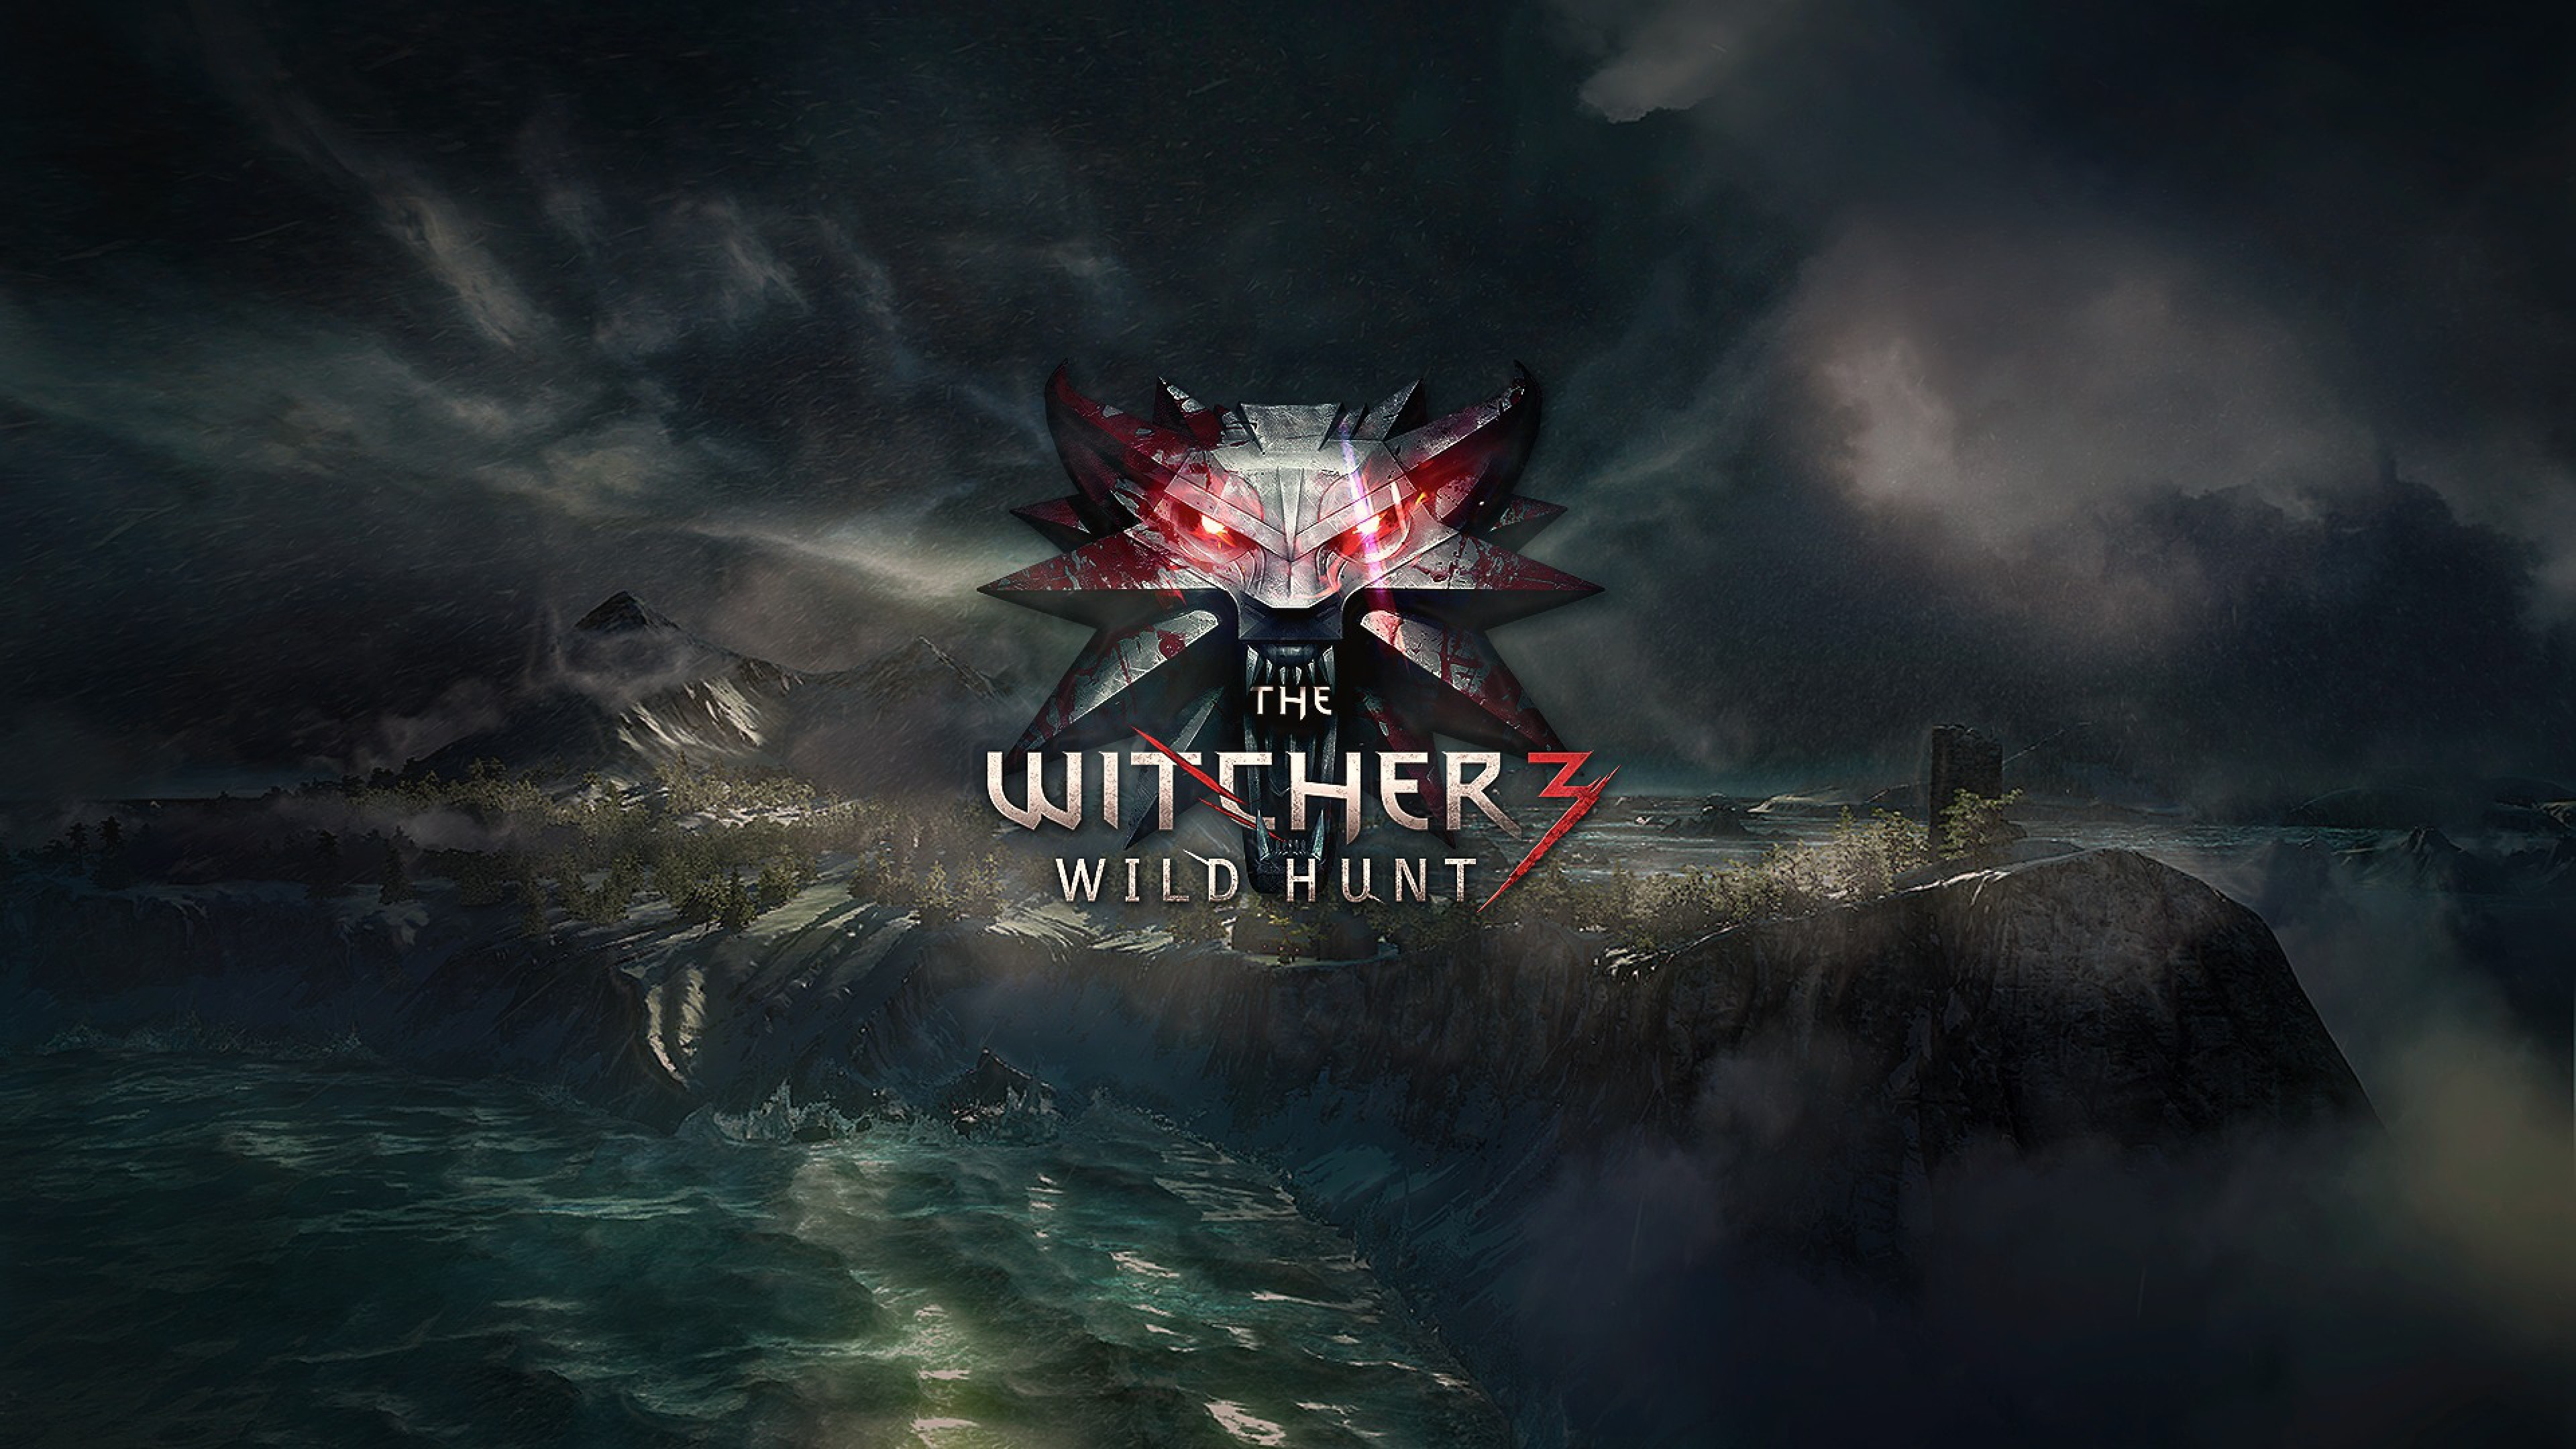 Witcher 3 4K Wallpaper (52+ Images